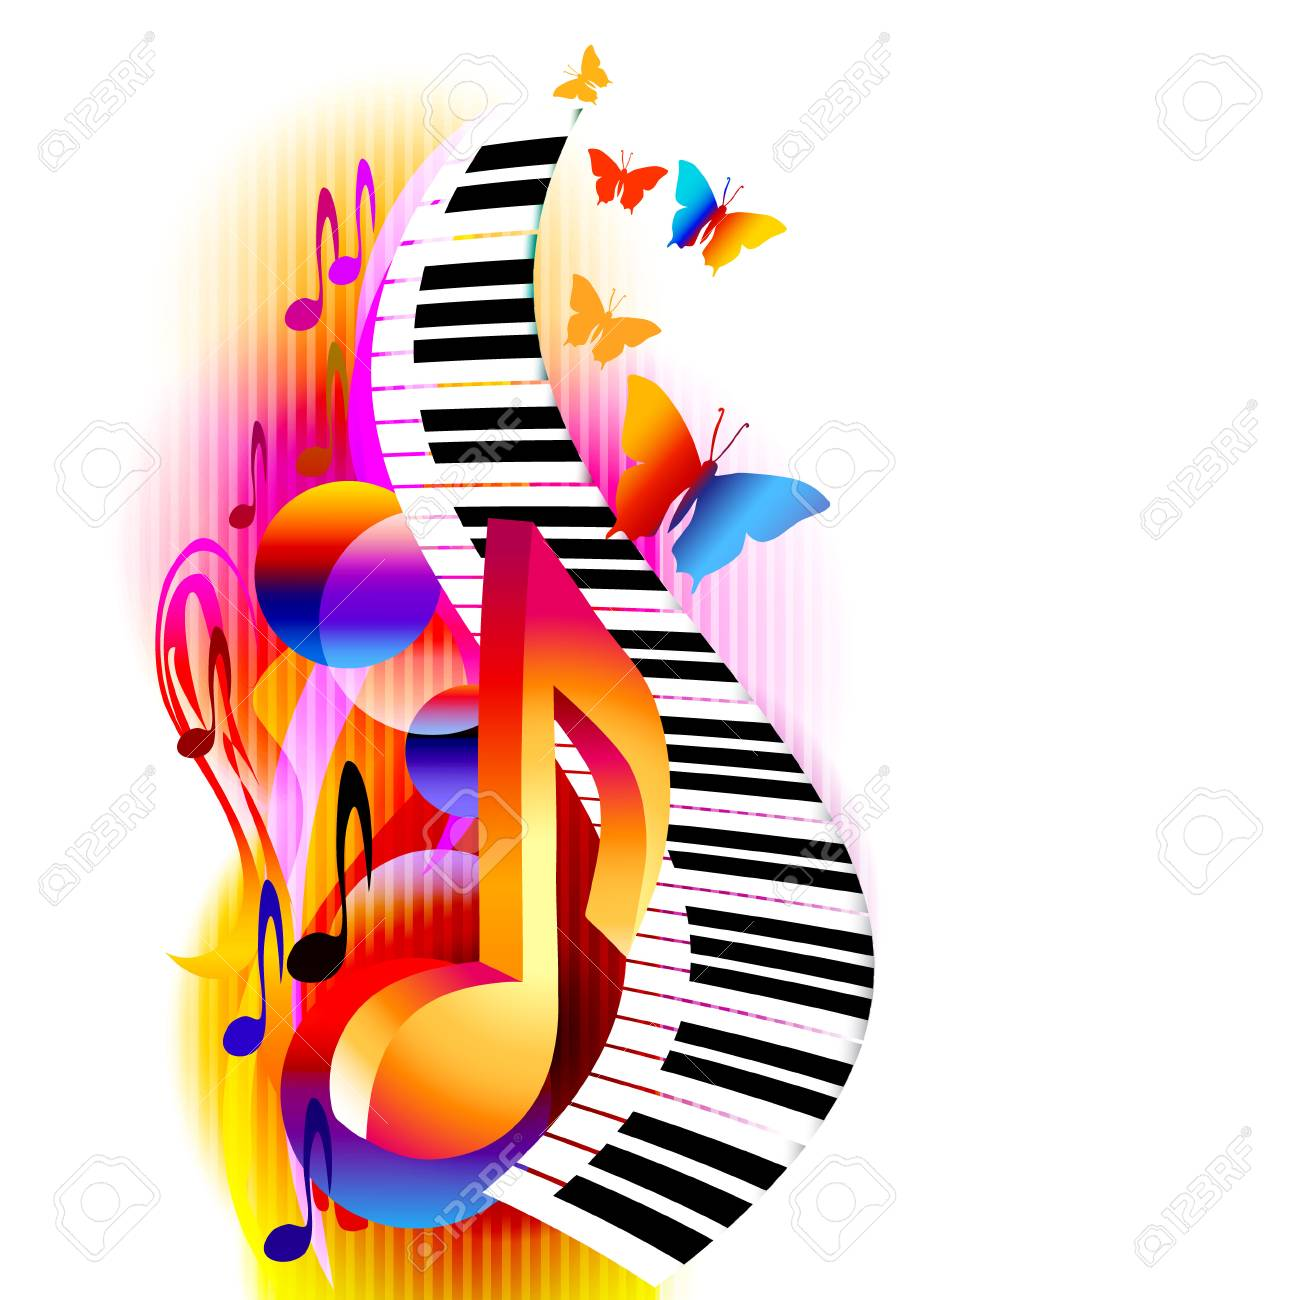 90325677-colorful-3d-music-notes-with-piano-keyboard-and-butterfly-music-background-for-poster-brochure-banne